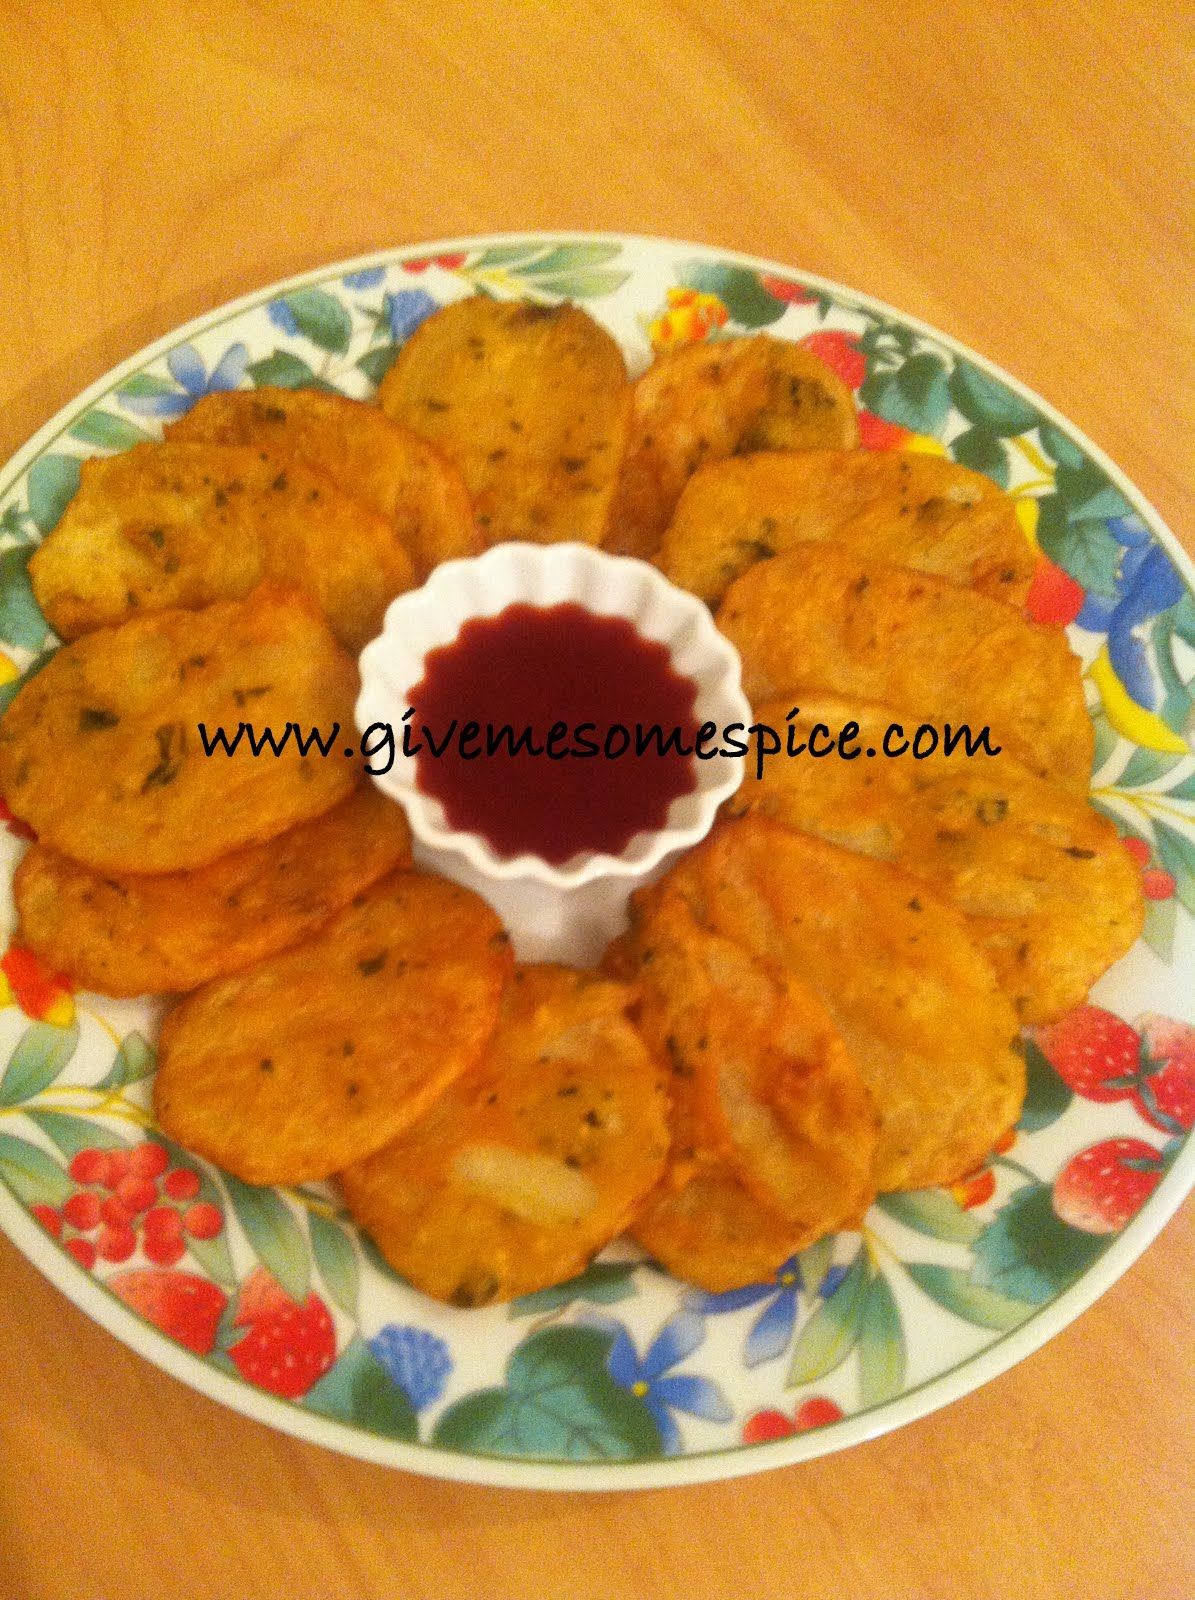 Crispy potato bhajia often referred to as marus bhajia authentic db82a1acf734d0c8af9e9fb39432a8f8g forumfinder Images